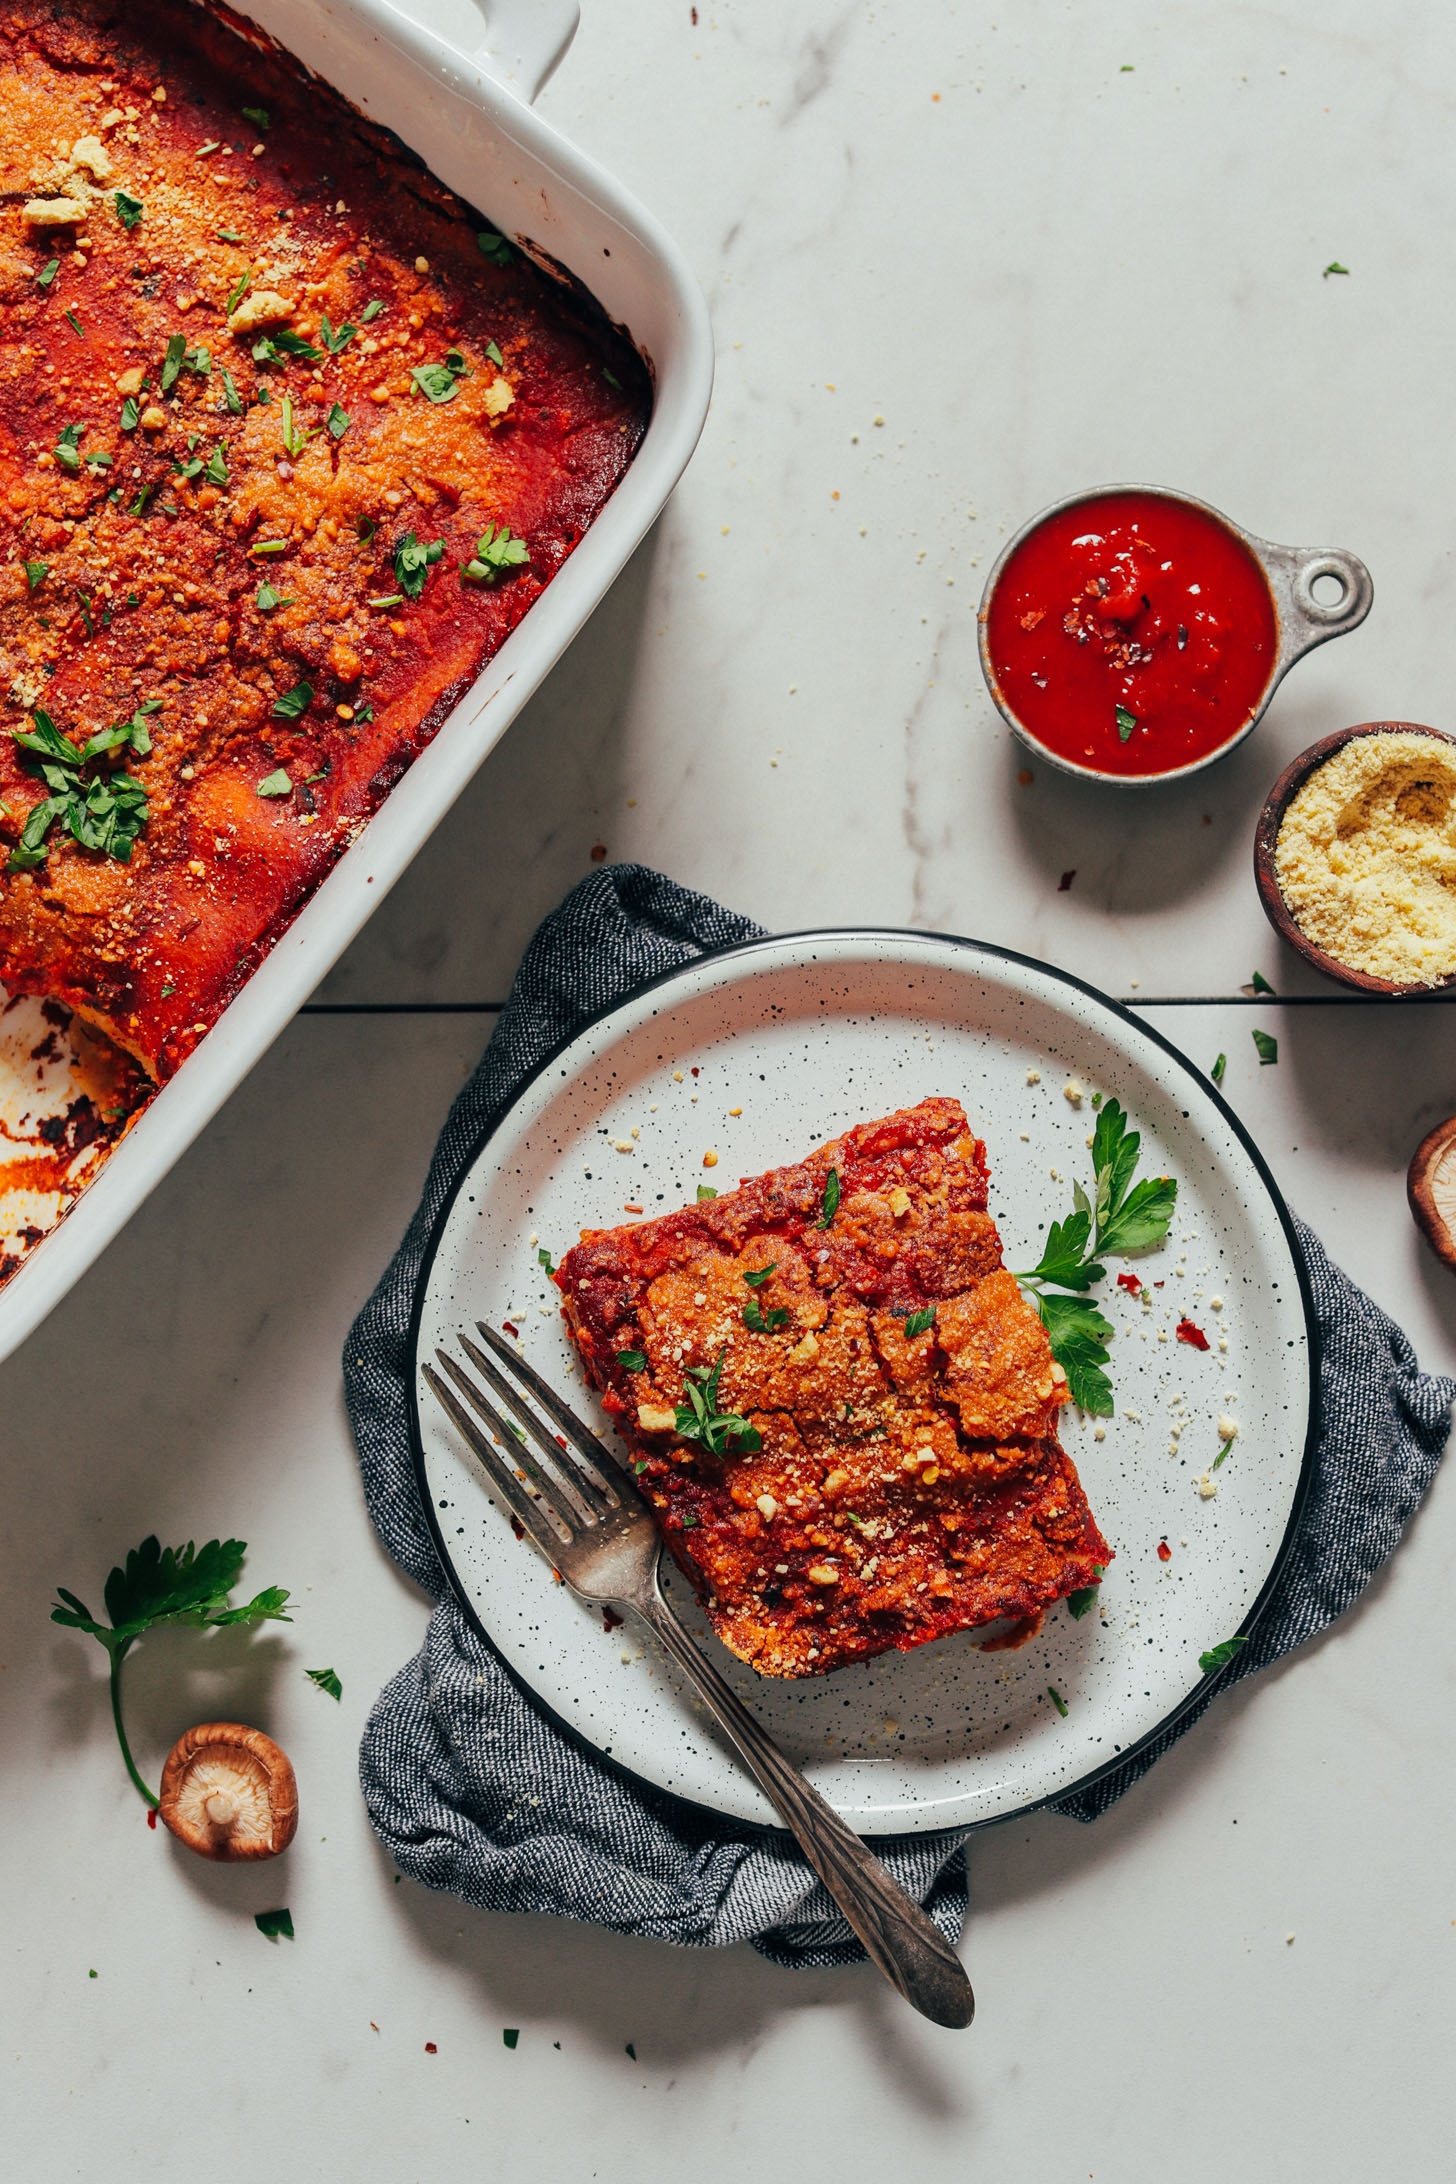 Slice of Vegan Lasagna alongside marinara, Vegan Parmesan, and the rest of the batch of lasagna